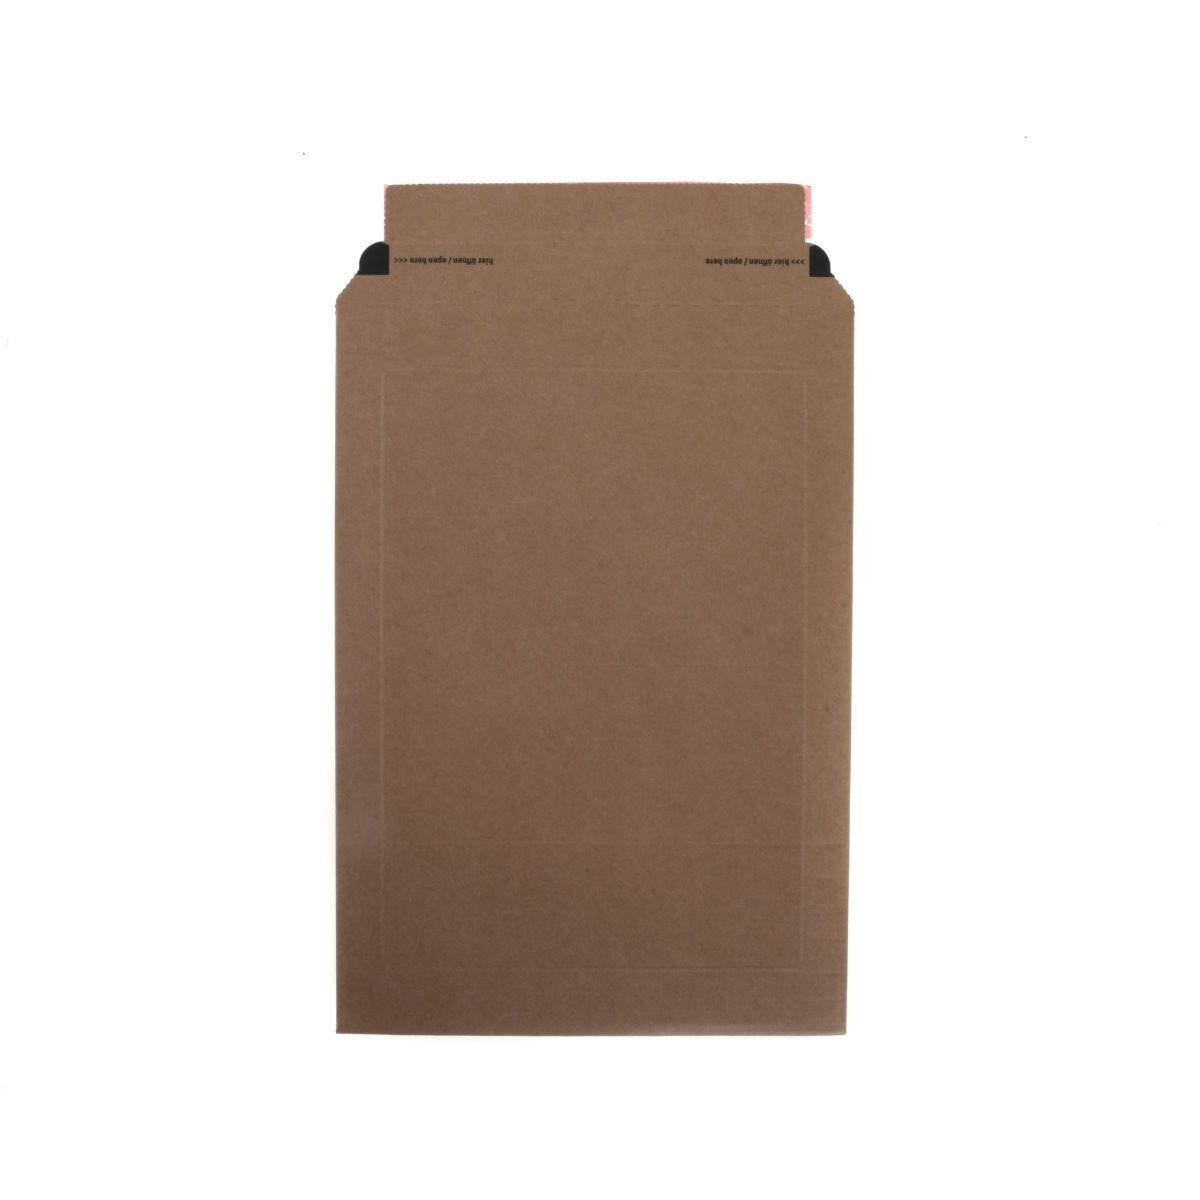 ColomPac All Board Envelope 185x270mm Peel and Seal